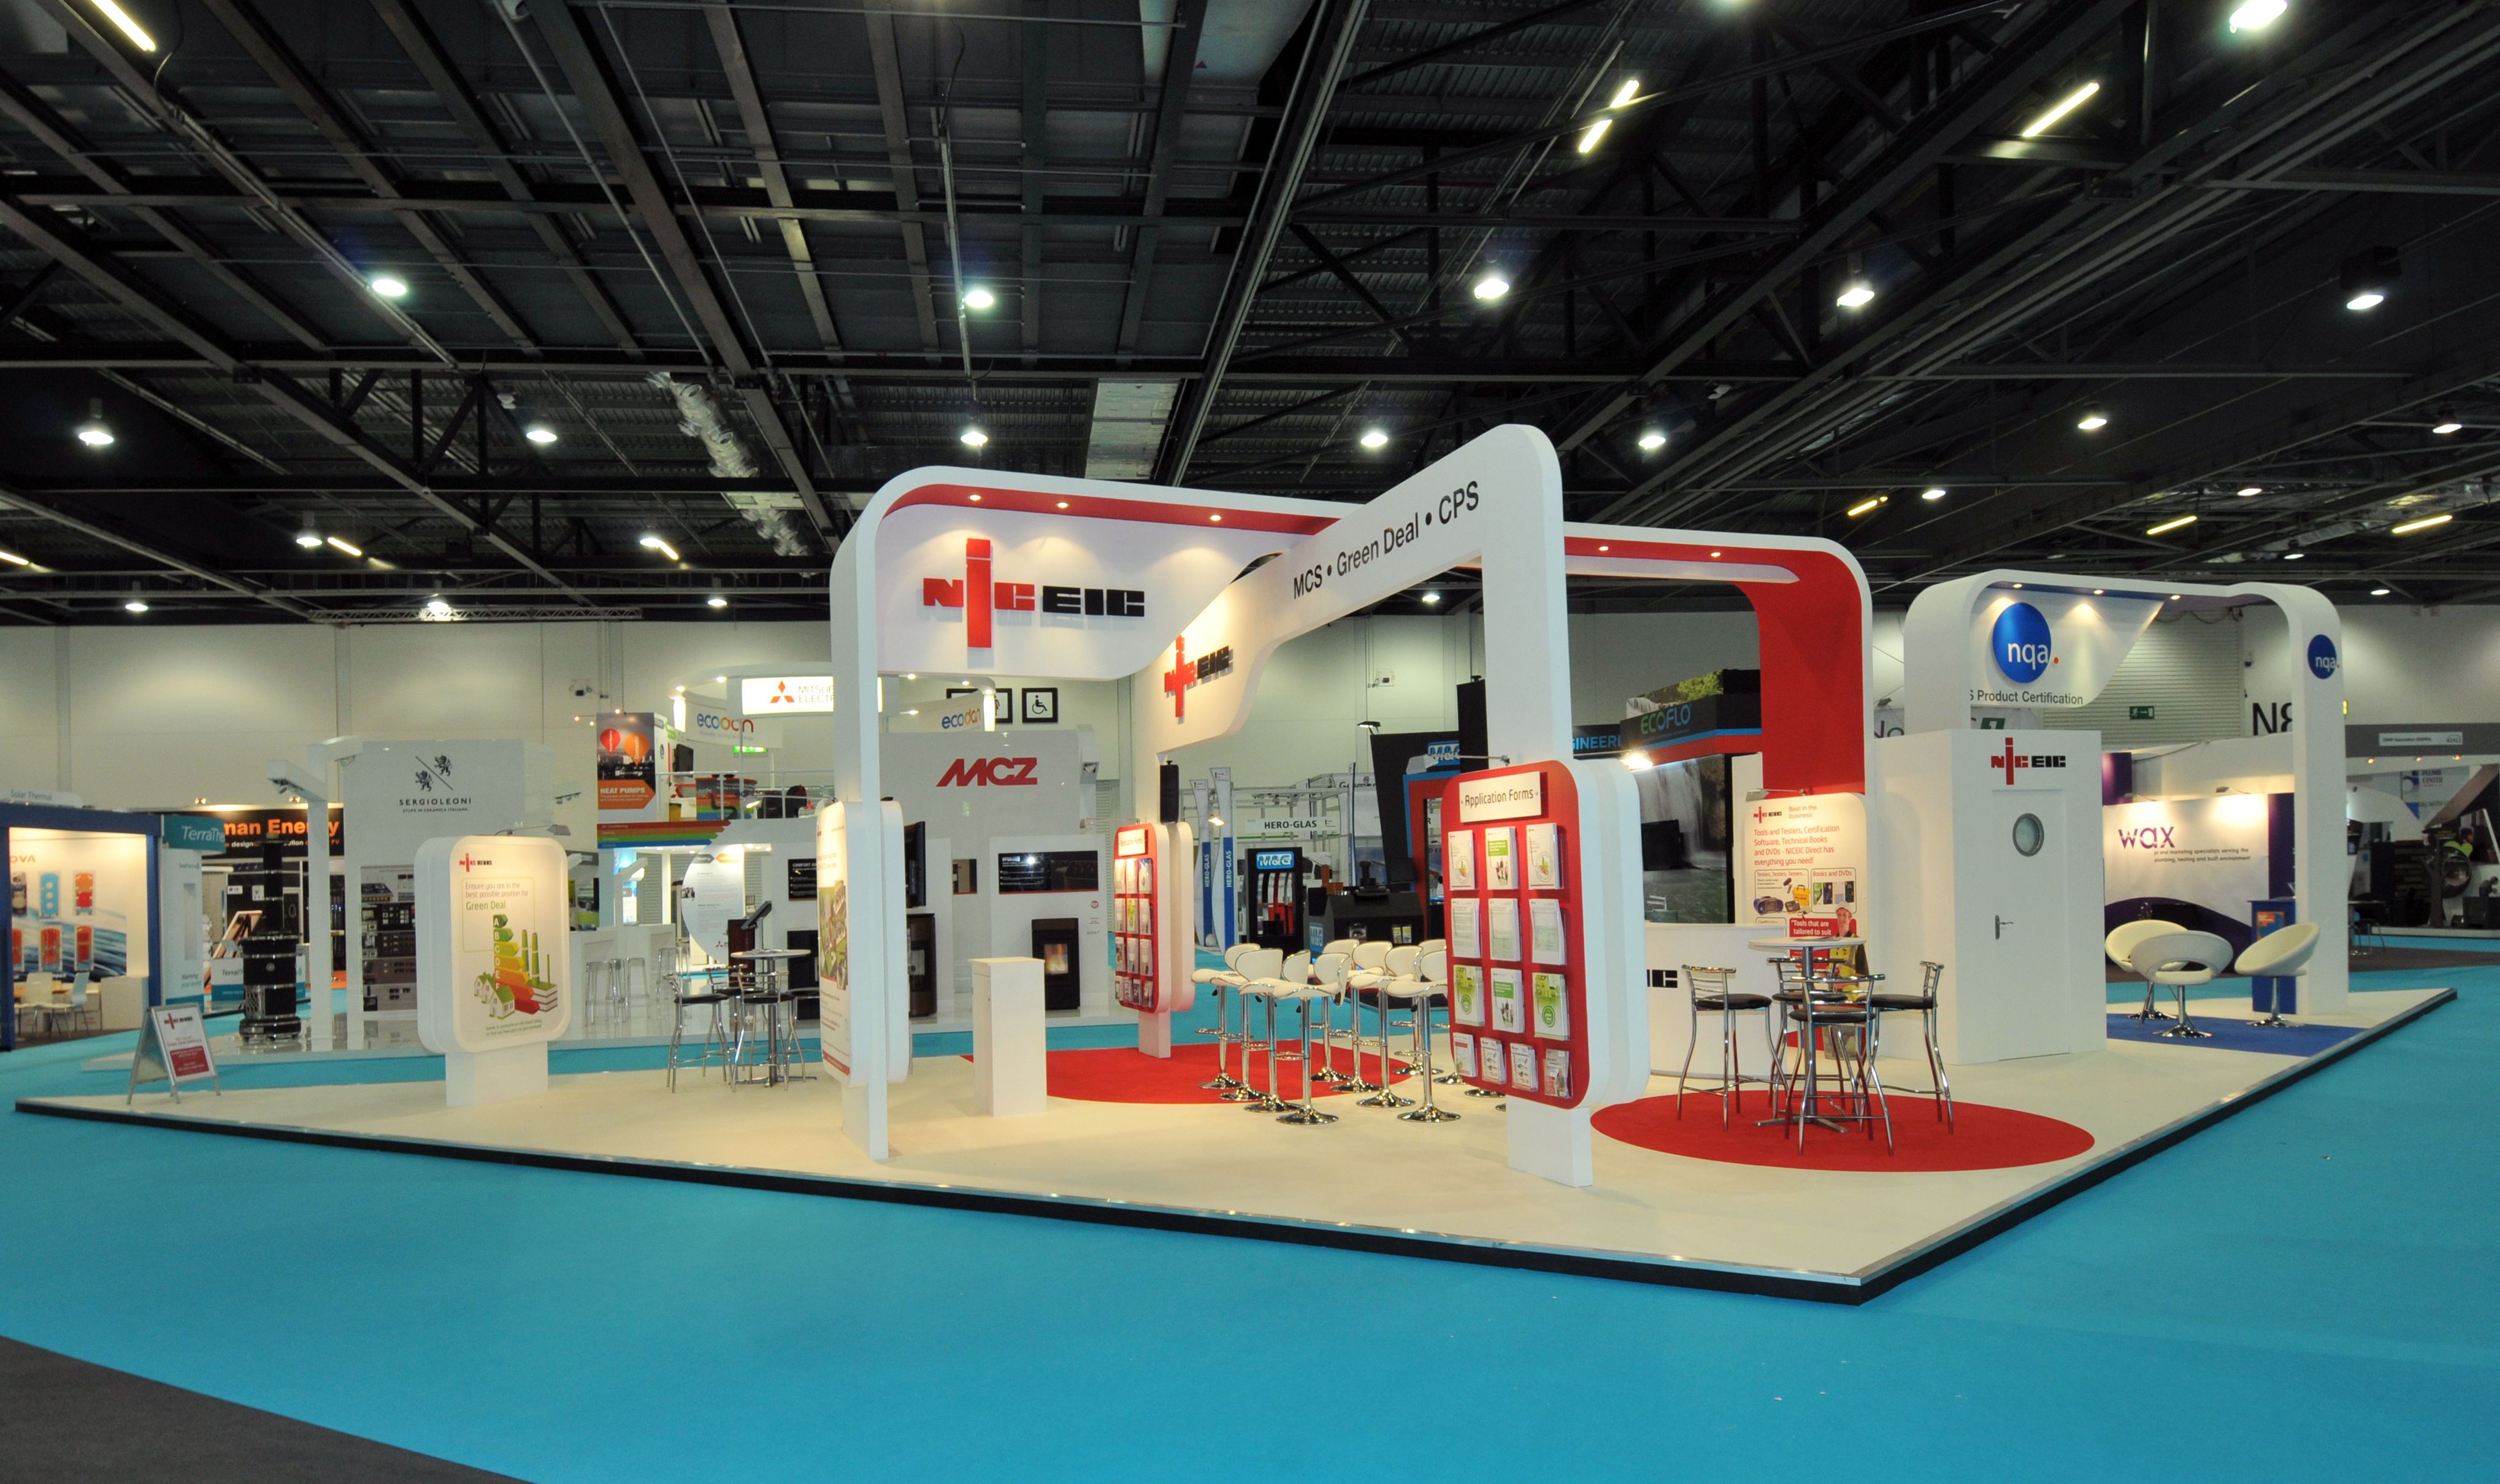 3d Marketing Exhibition Stands Mobile Displays Exhibition Stand Design Exhibition Booth Design Exhibition Stand